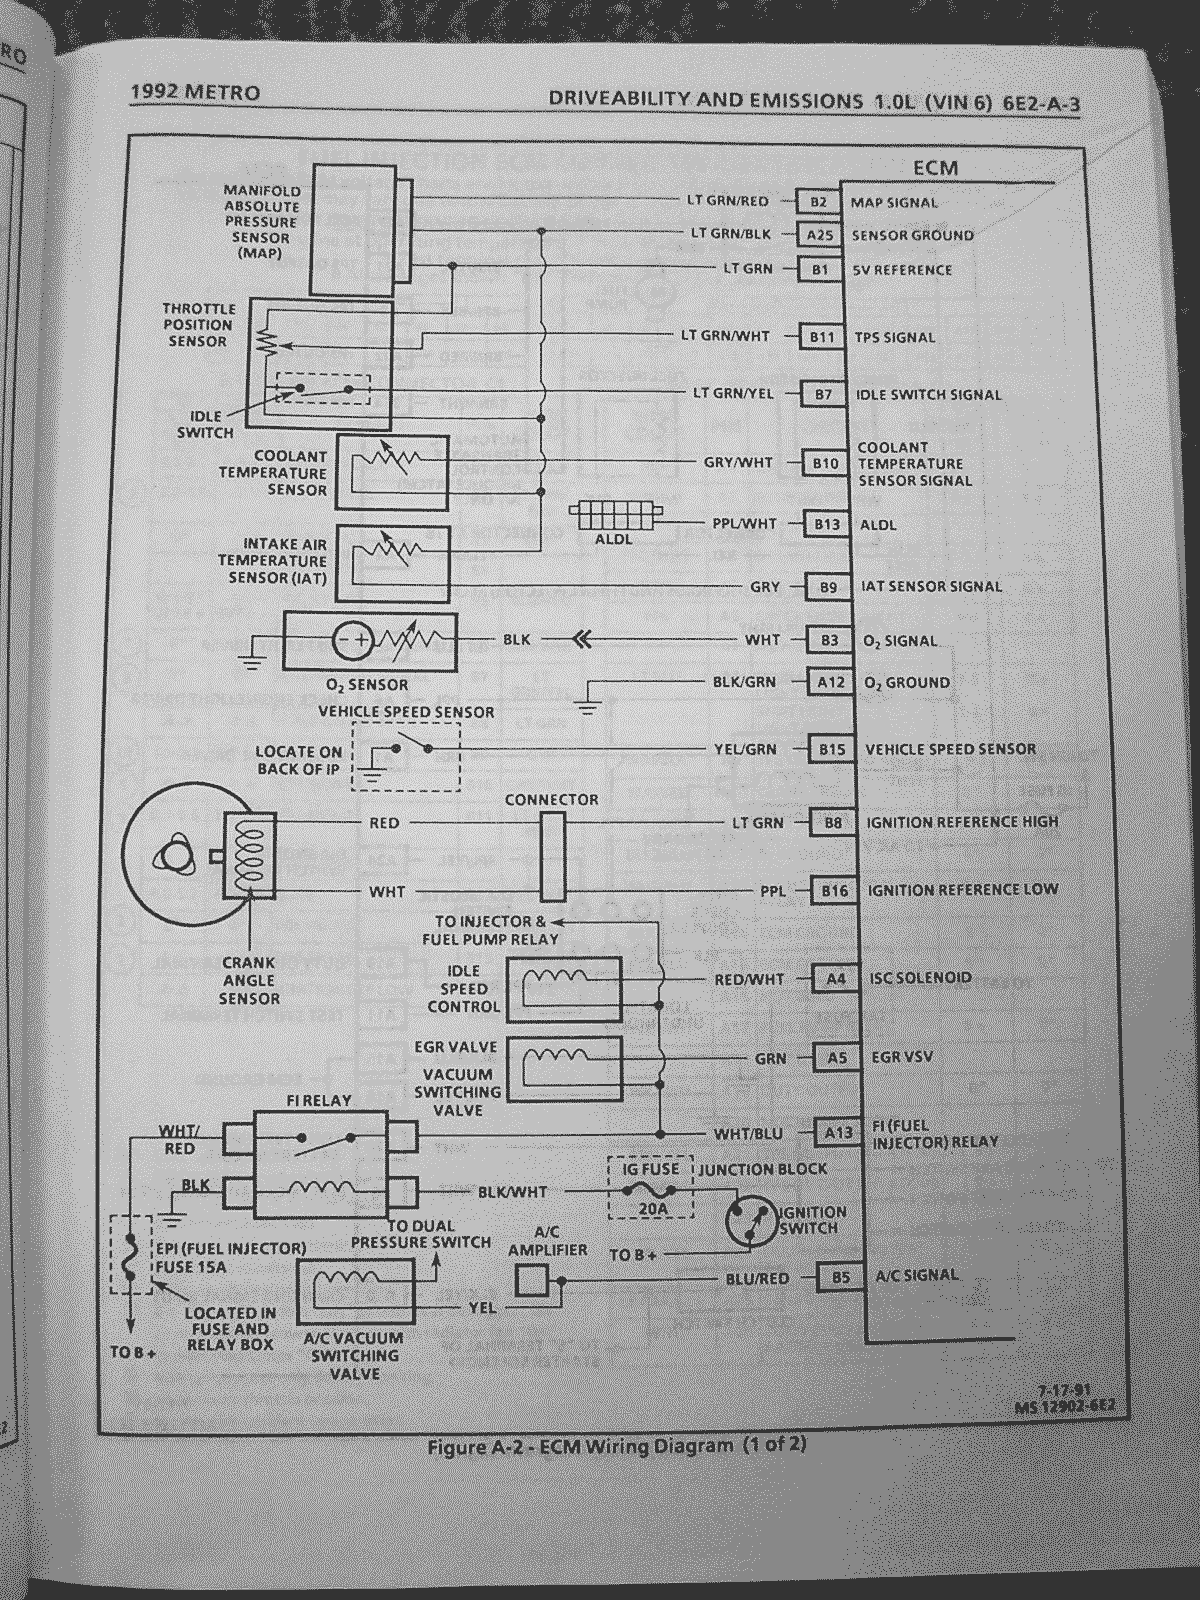 geo metro wire diagram geo metro and suzuki swift wiring diagrams metroxfi com 92 94 metro 3 cylinder ecu pinouts